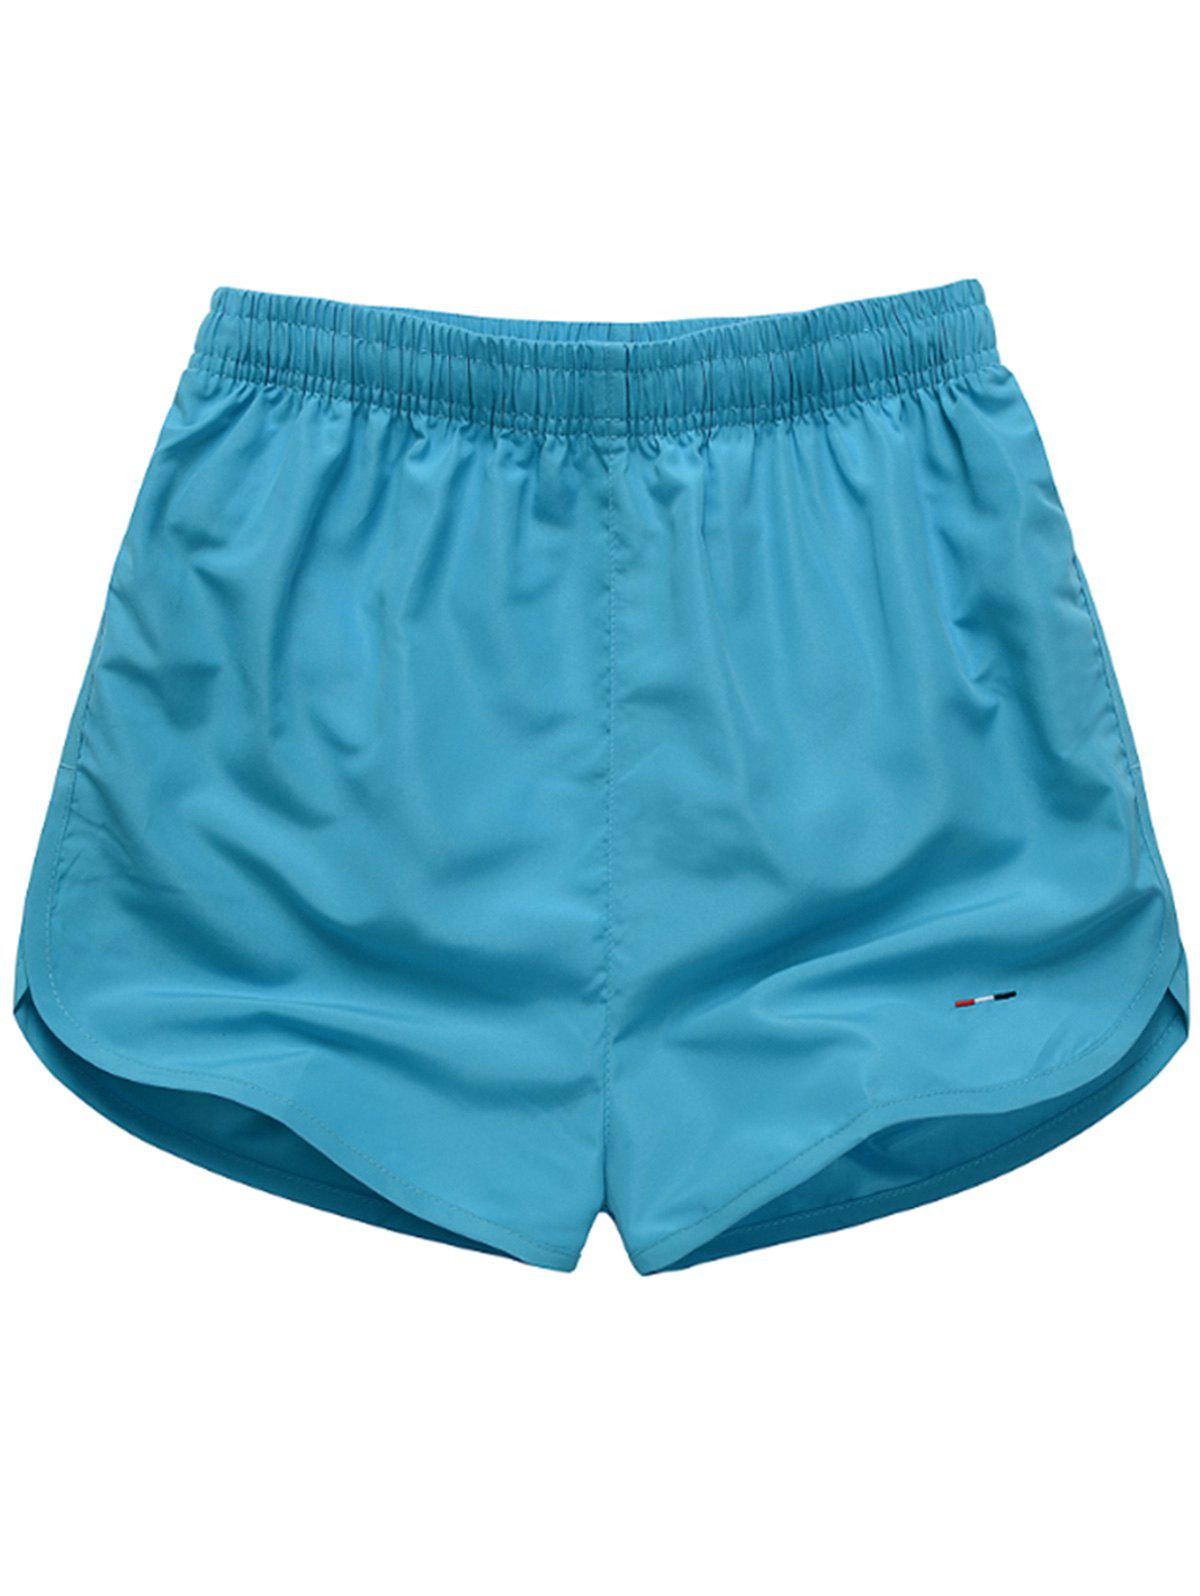 Mesh Lined Dolphin Hem Beach Shorts - LAKE BLUE 2XL